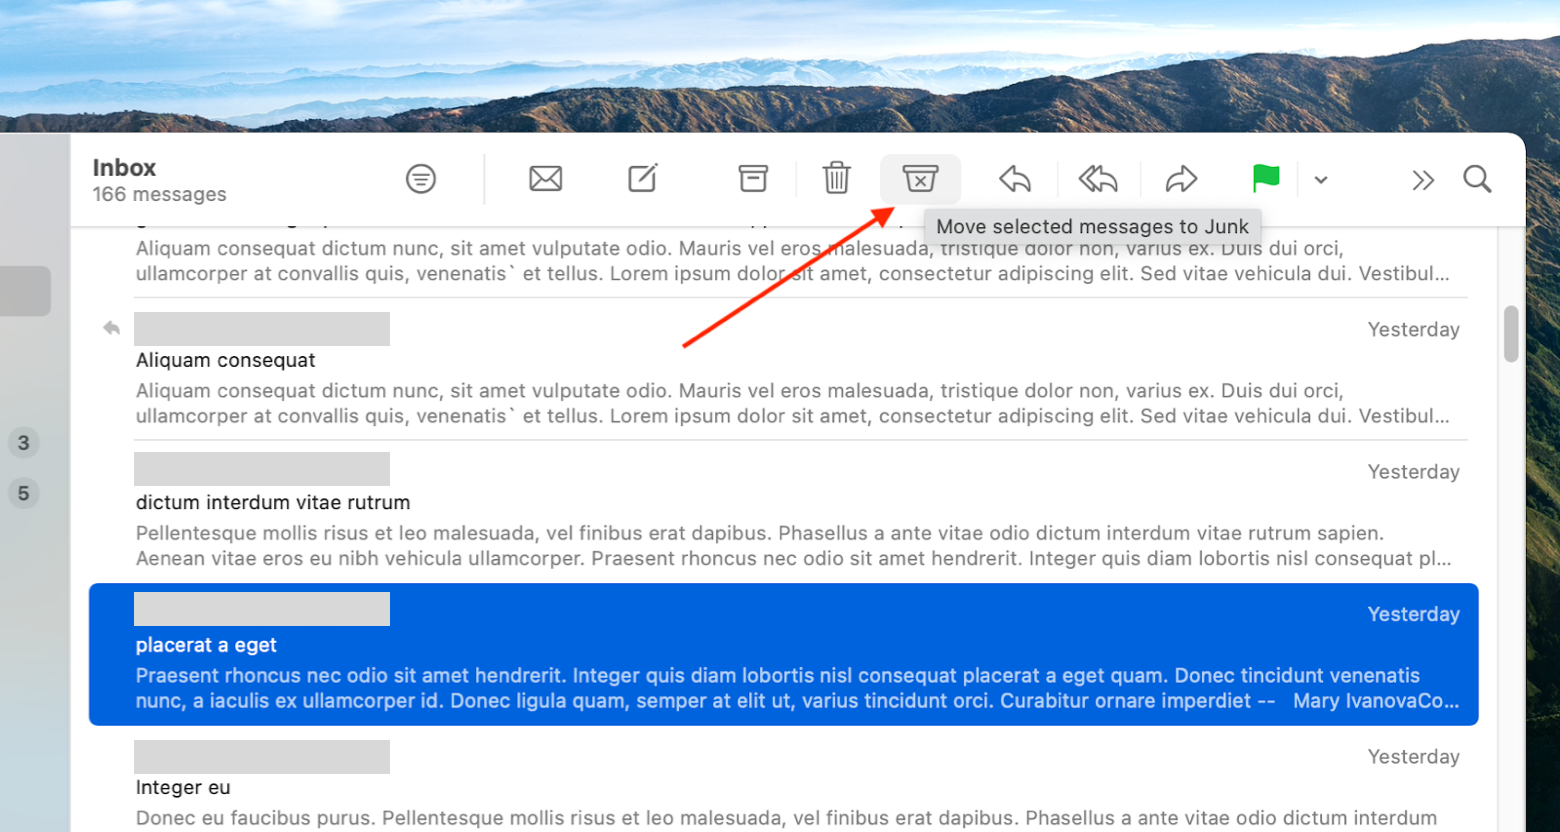 move the spam message to the Junk folder